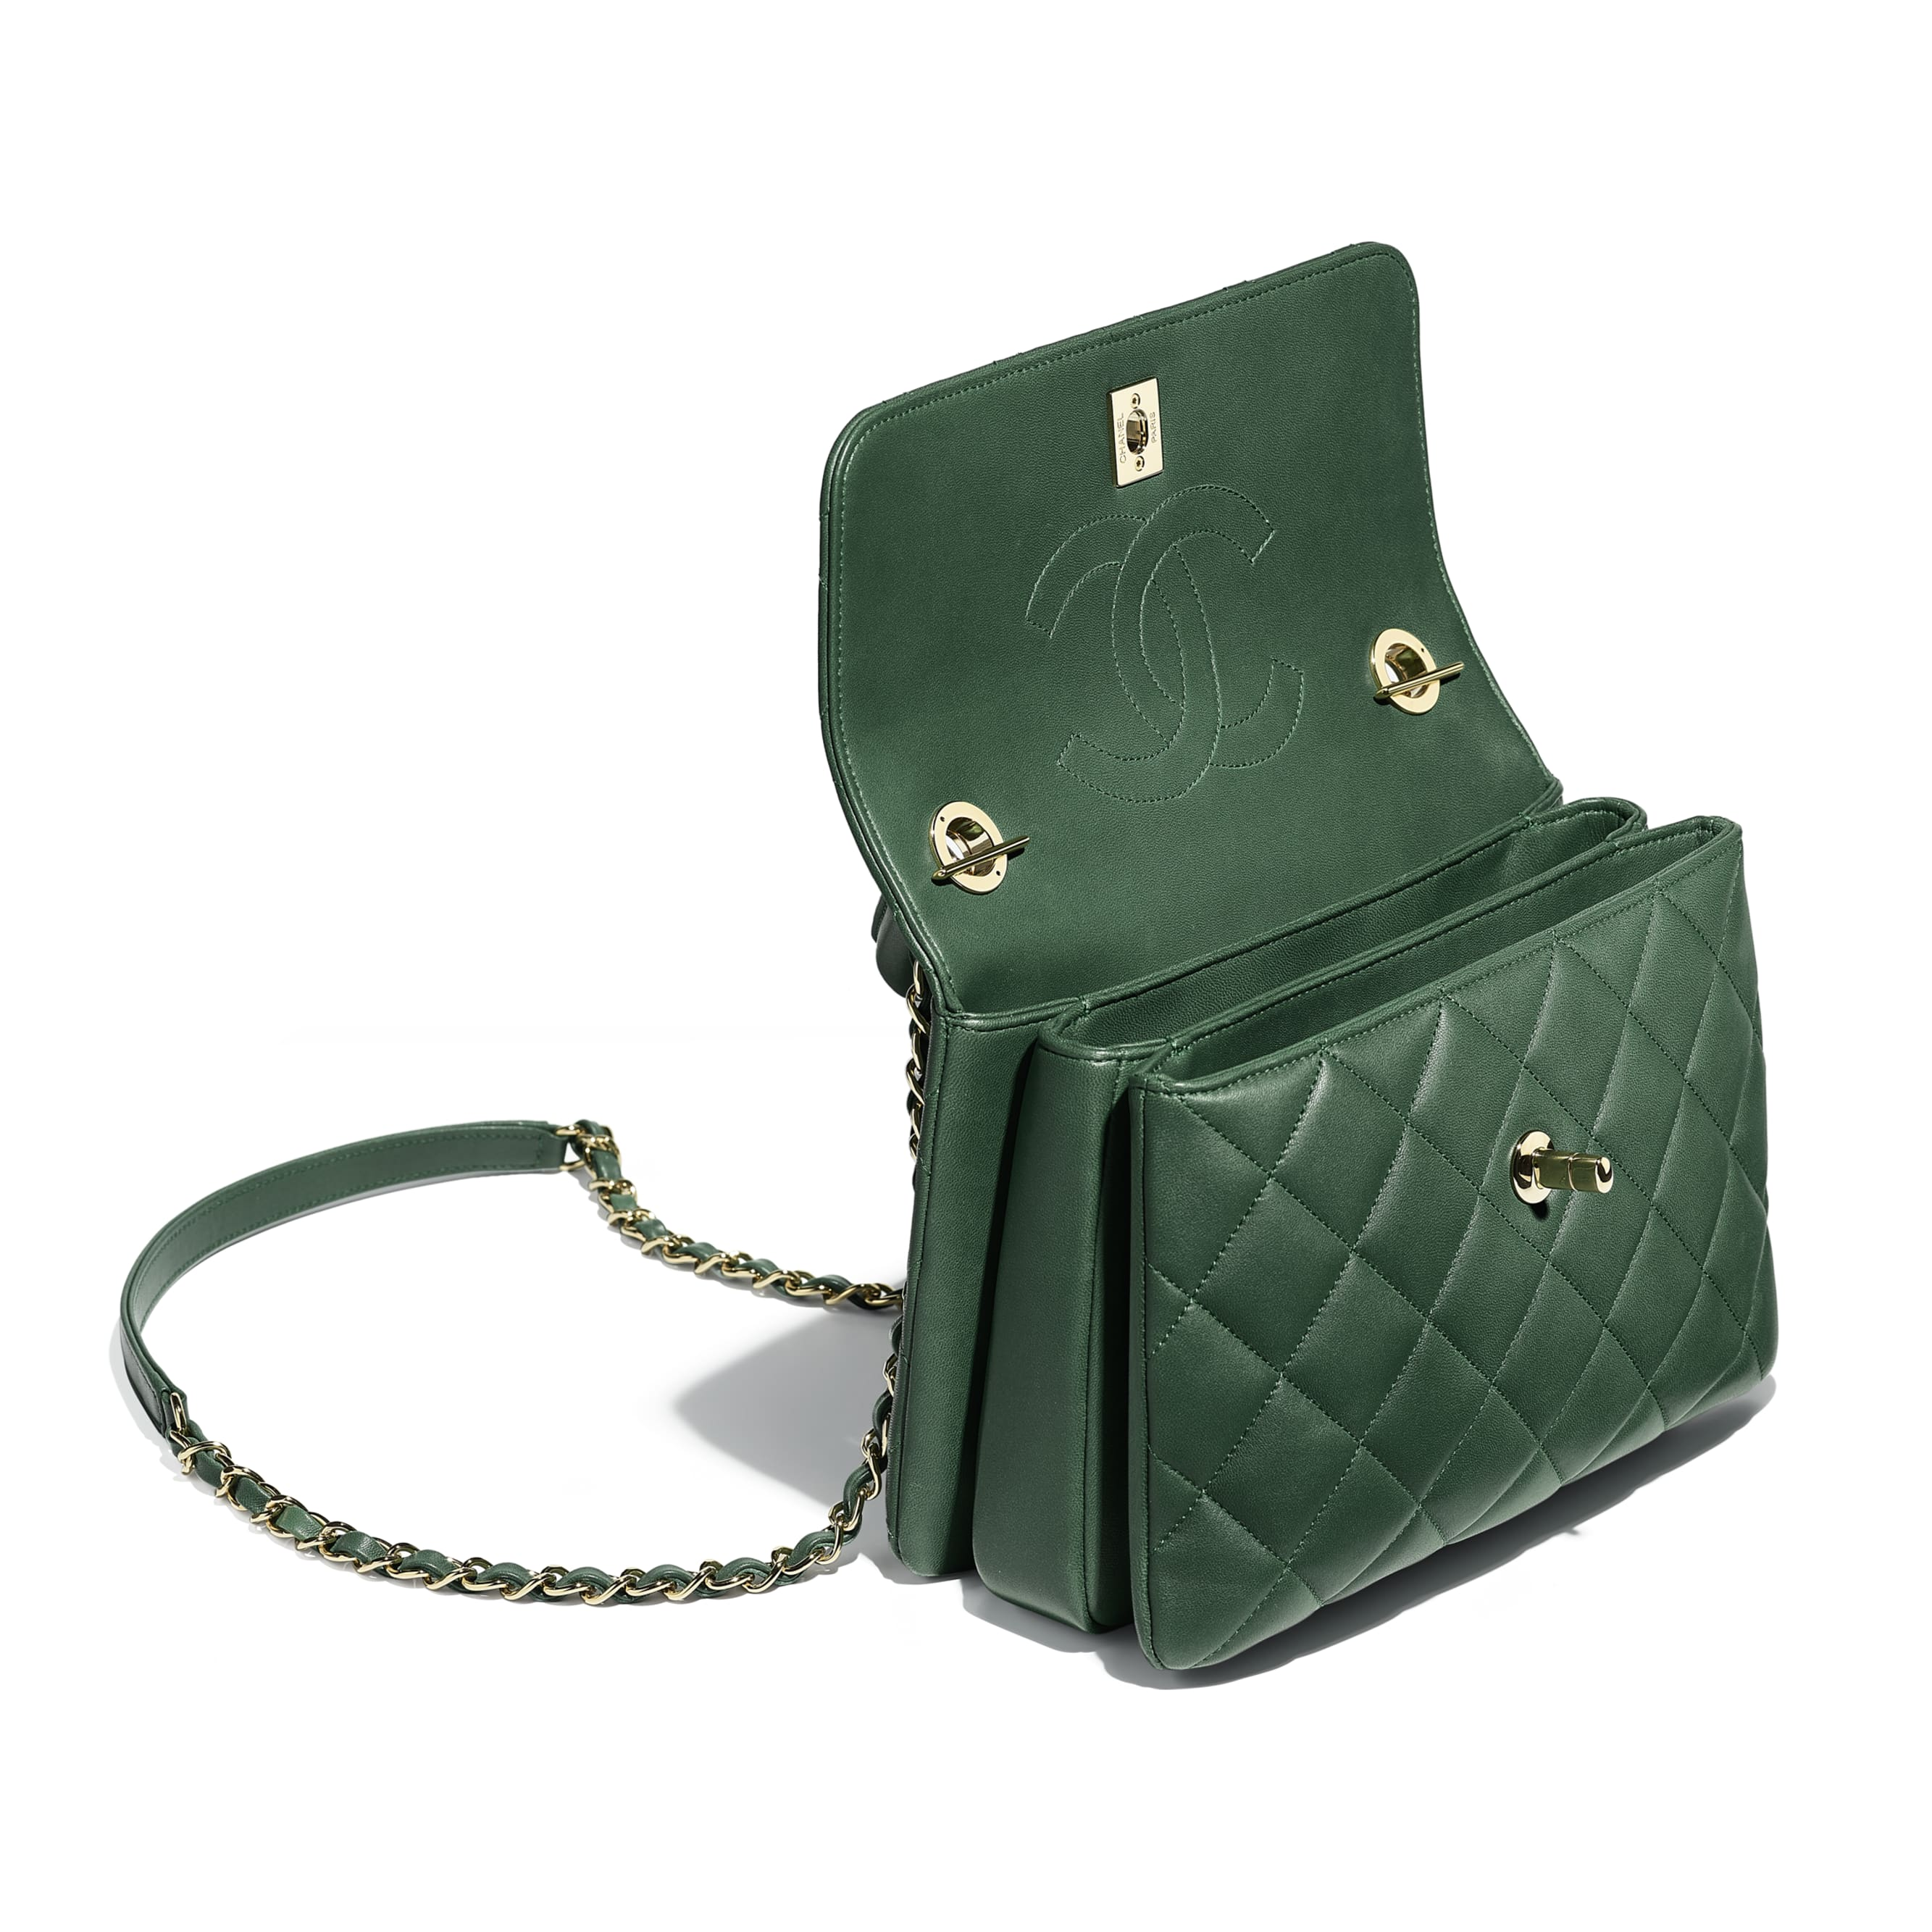 2a1a39694f25 10 Iconic Chanel Bags Worth the Investment - Brands Blogger